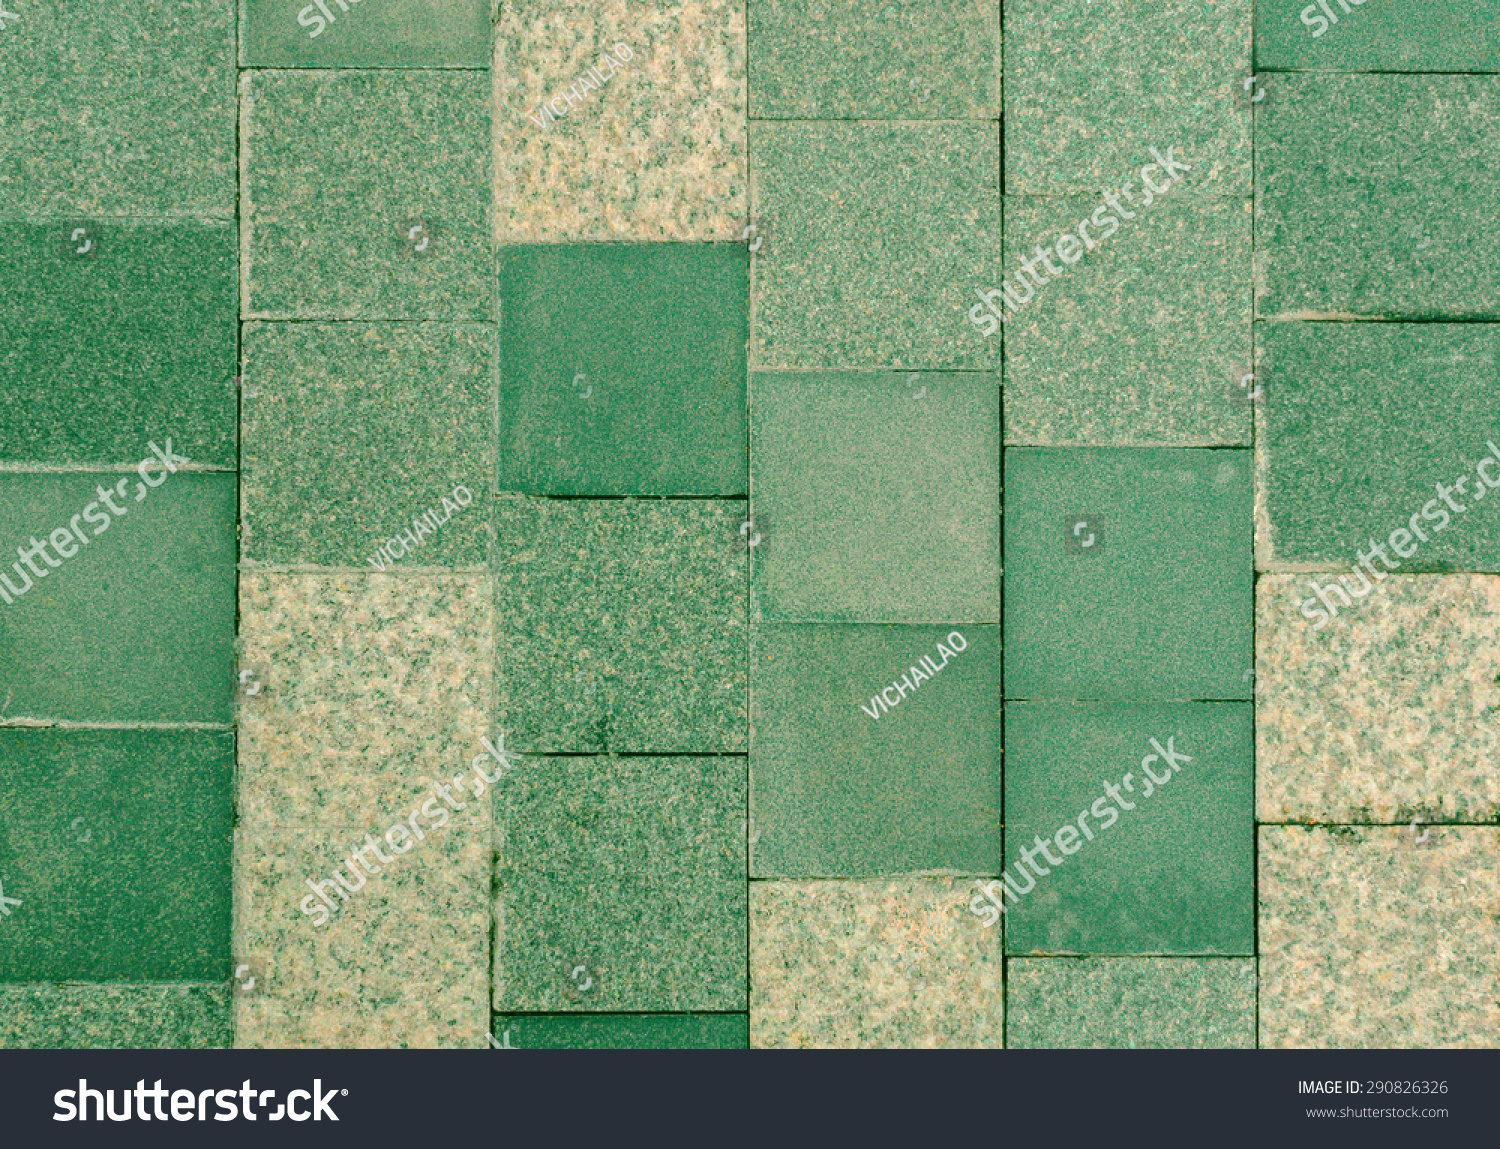 Green marble floor tile images tile flooring design ideas modern style design green marble tile stock photo 290826326 modern style design of green marble tile dailygadgetfo Choice Image